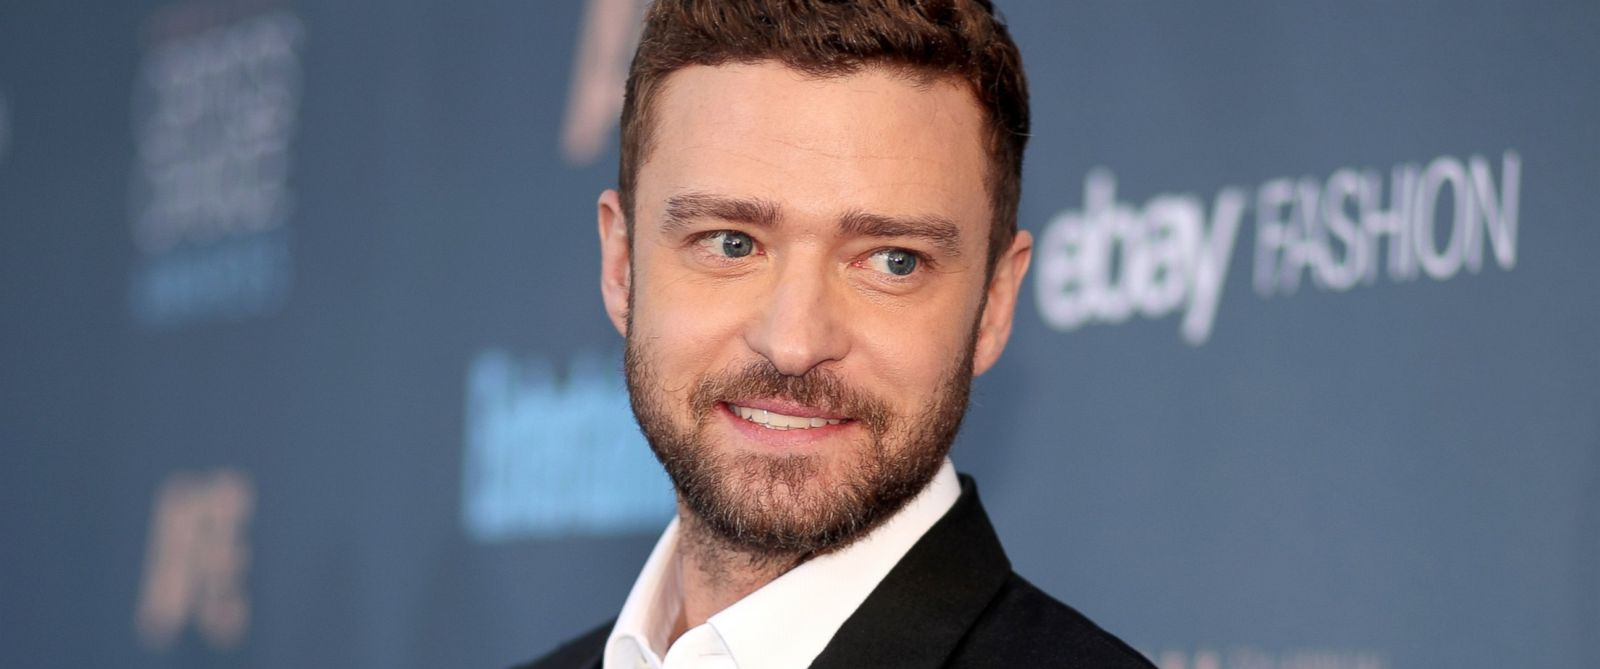 Watch Justin Timberlake Make 2 Half-Court Basketball Shots ... Justin Timberlake